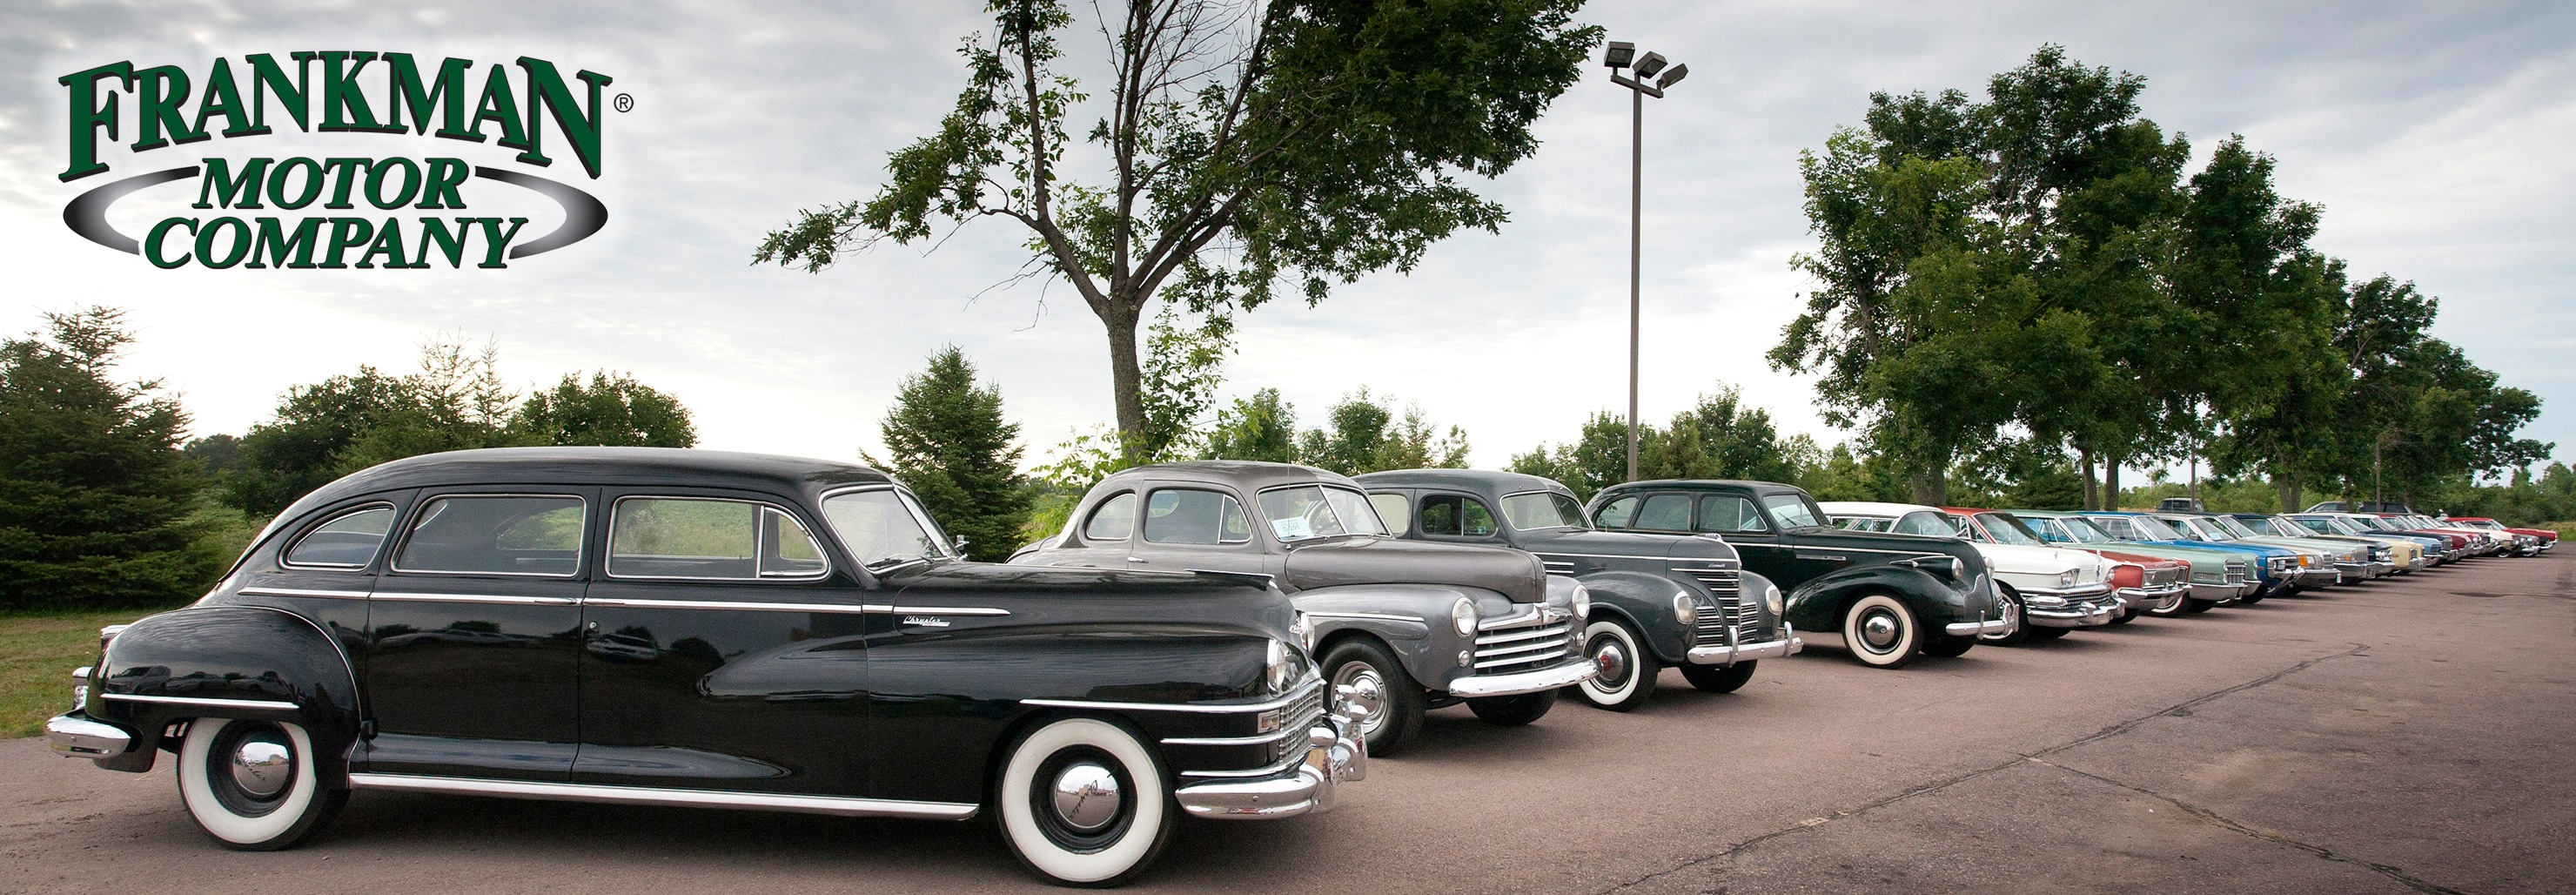 Sioux falls frankman motor company used ford chevrolet for Kirksville motor company chevrolet buick gmc toyota